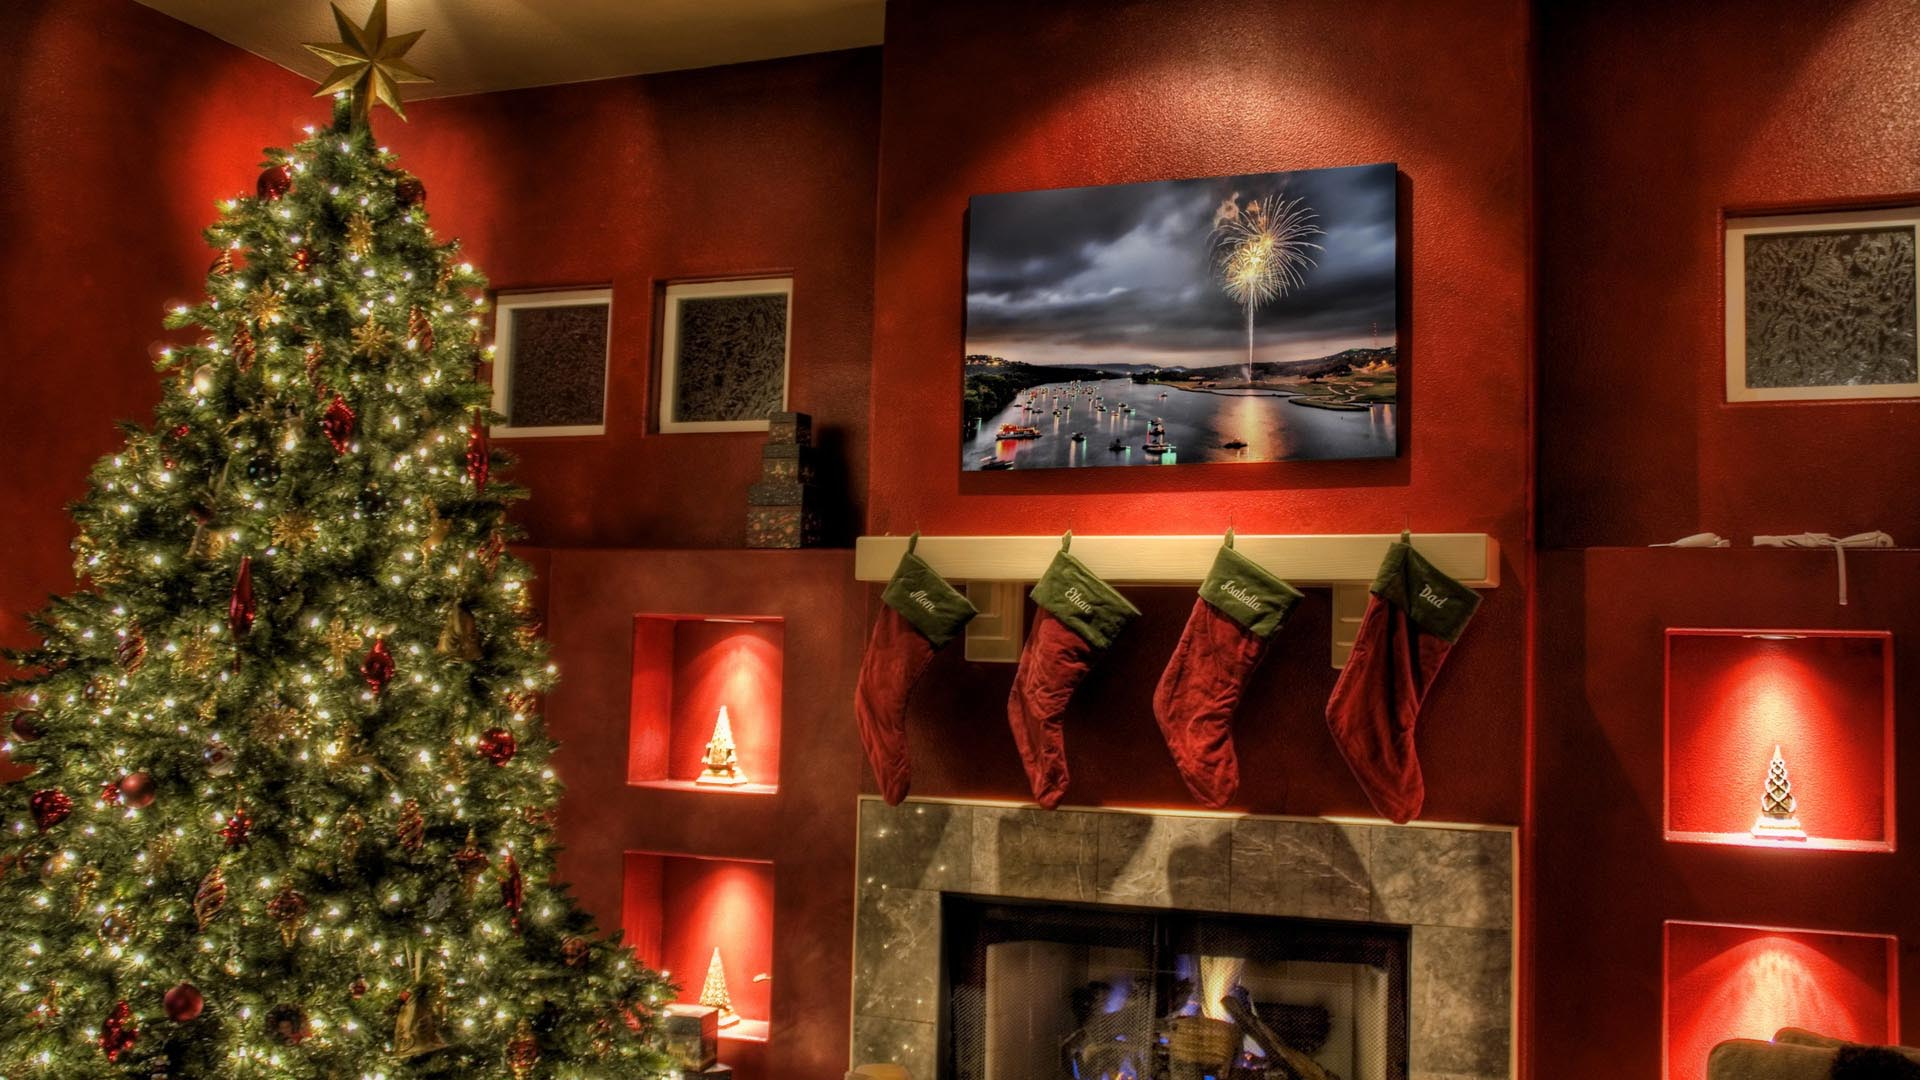 Christmas Hd Android Apps On Google Play Fireplace Live Wallpaper ...